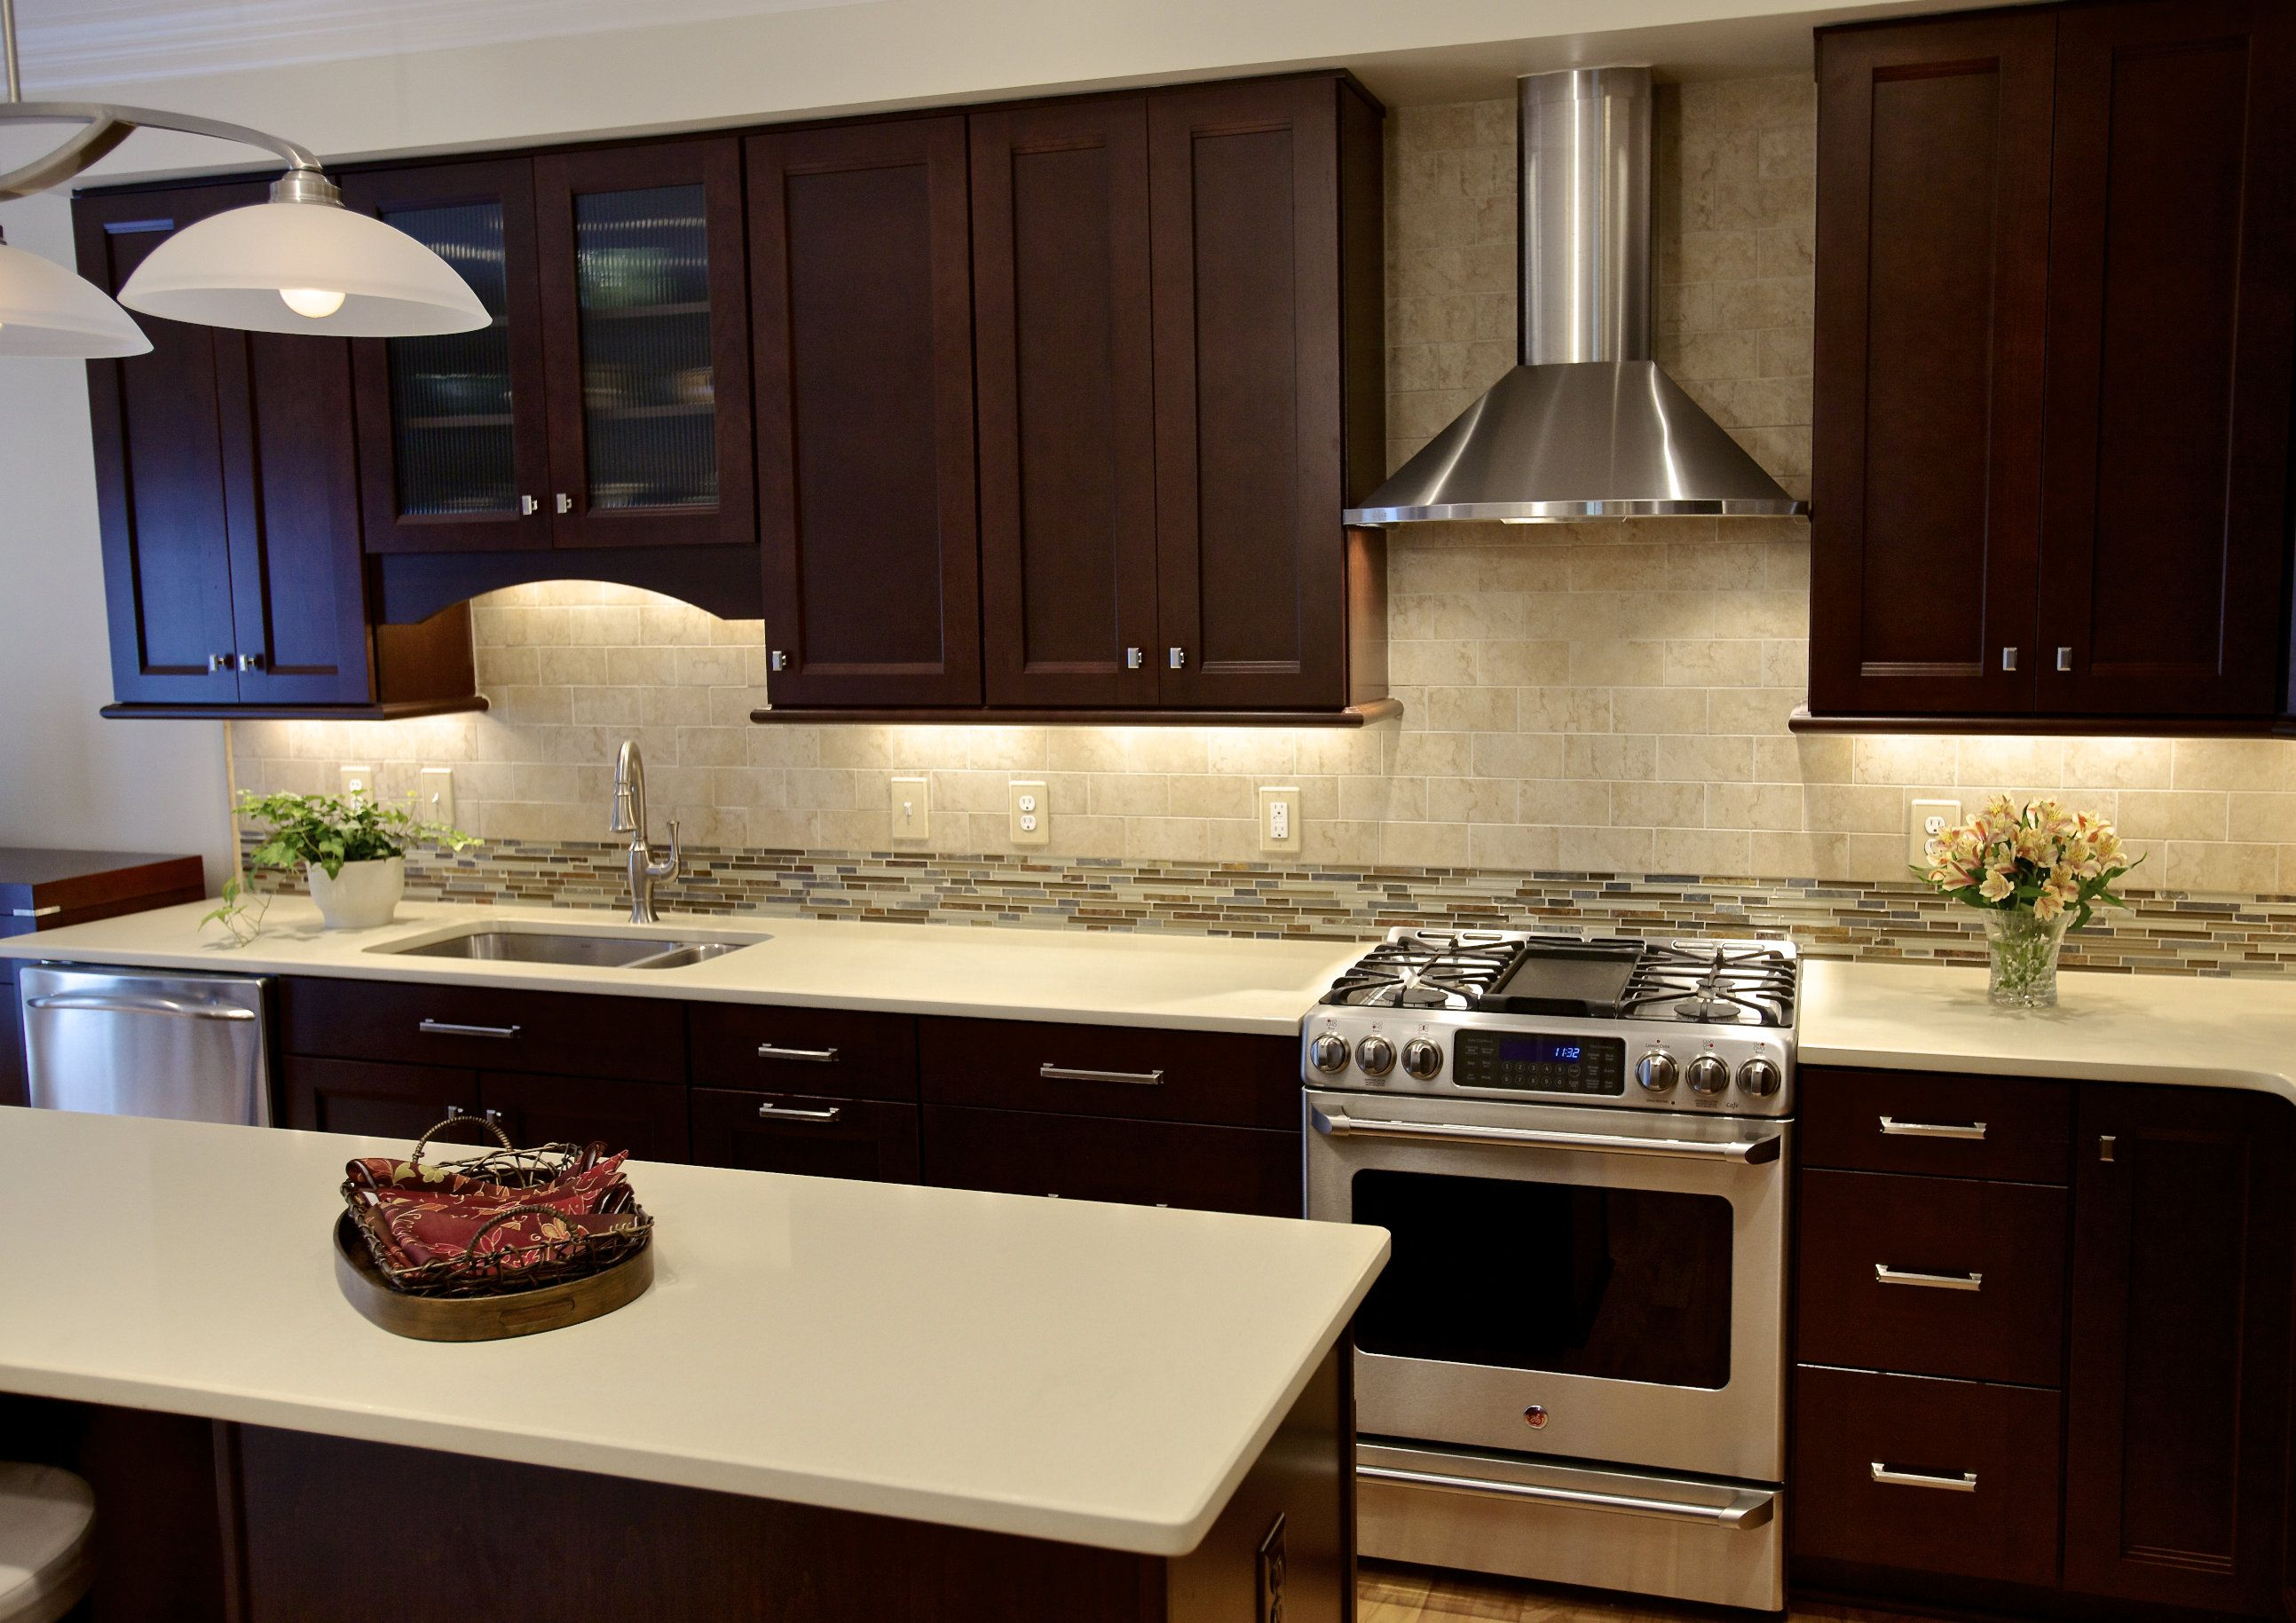 Kitchen Backsplash Cherry Cabinets White Counter Cherry Cabinets With Quartz Countertops  Waypoint Cabinets With A